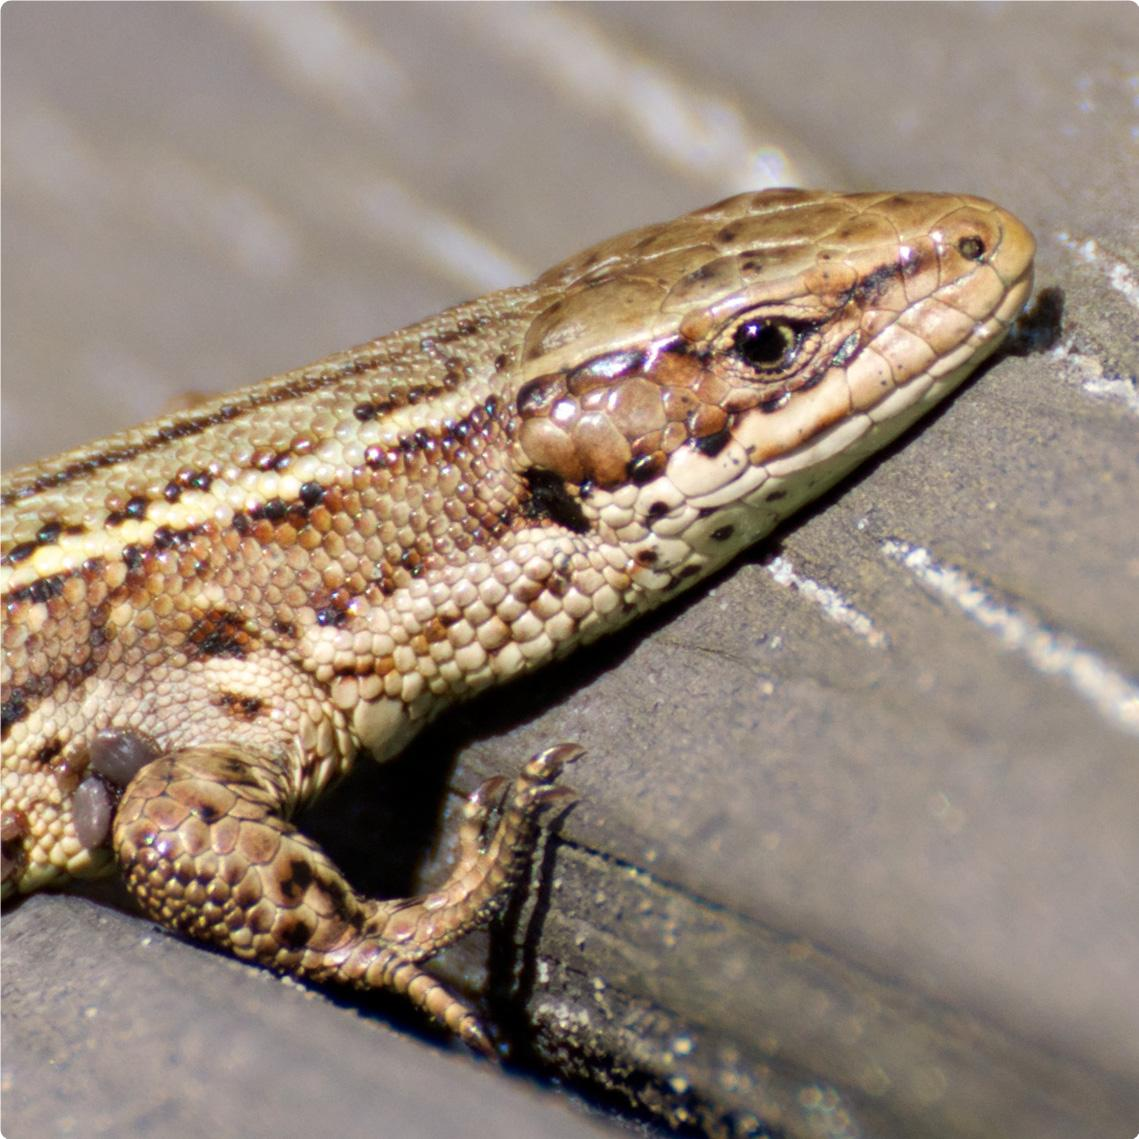 The sand lizard and the common lizard